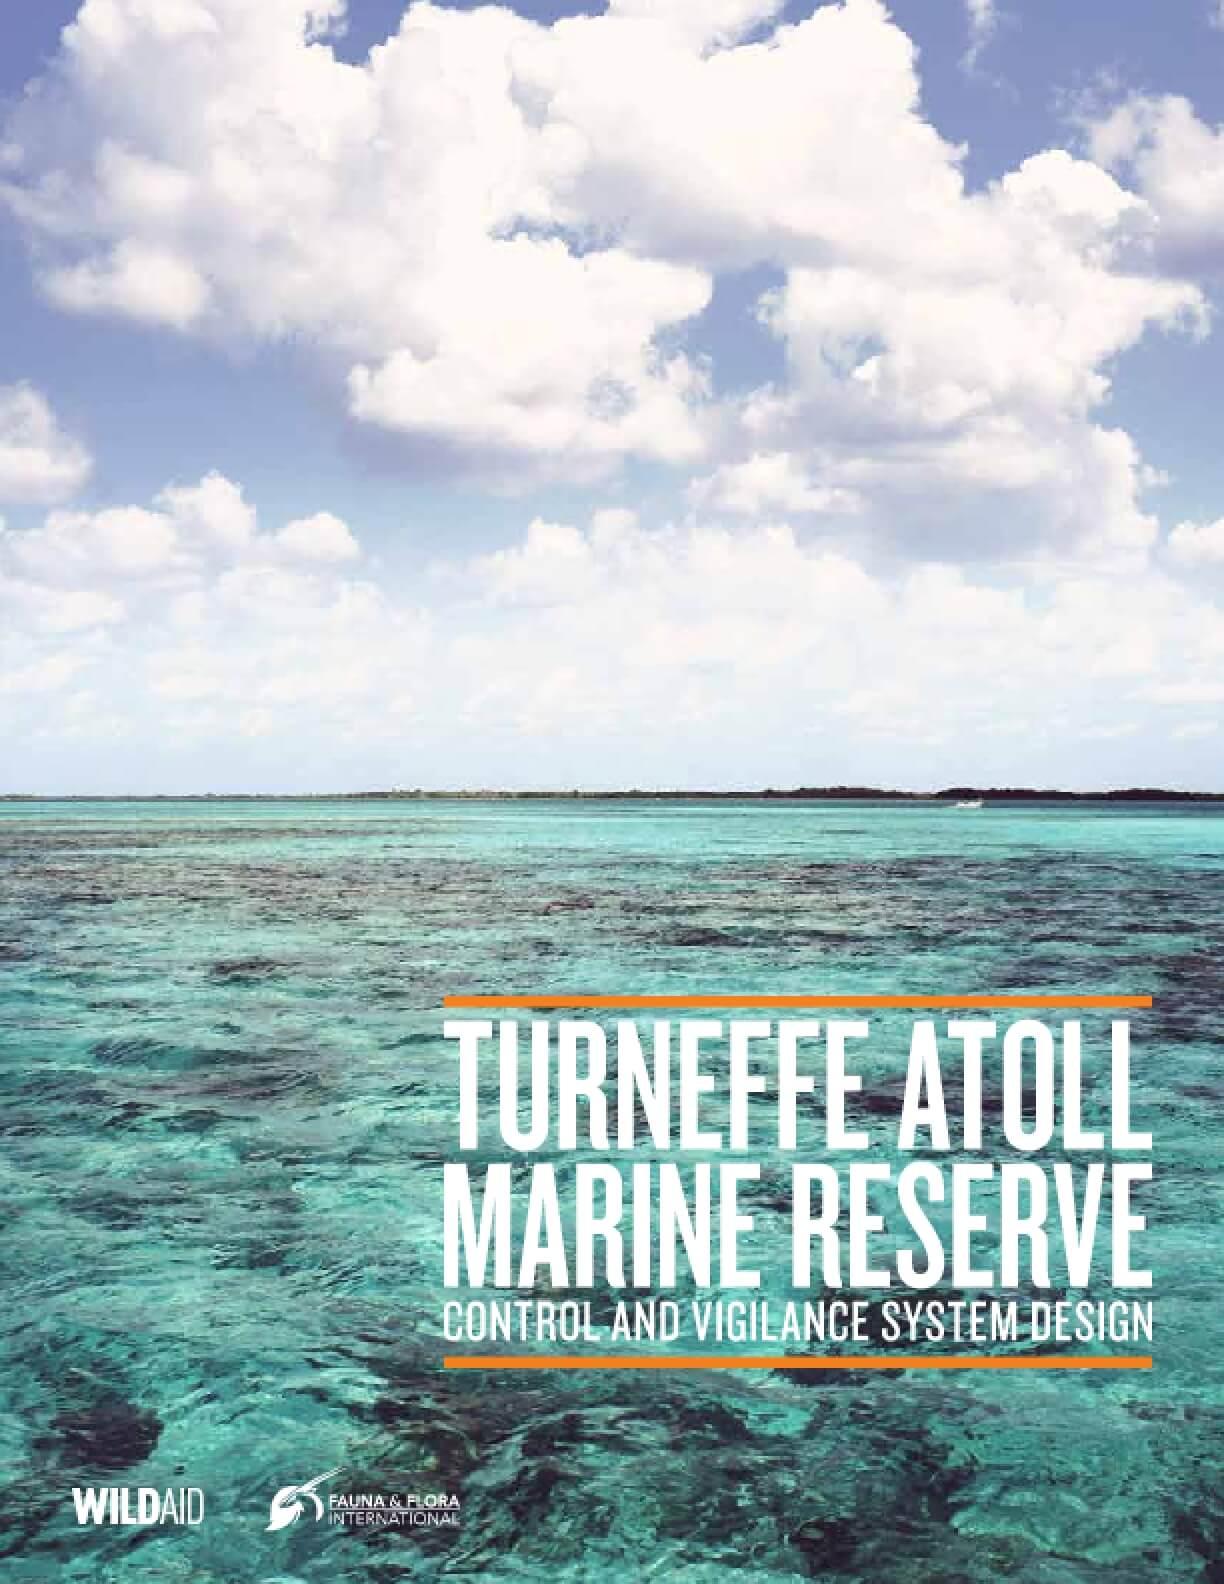 Turneffe Atoll Marine Reserve Control and Vigilance System Design